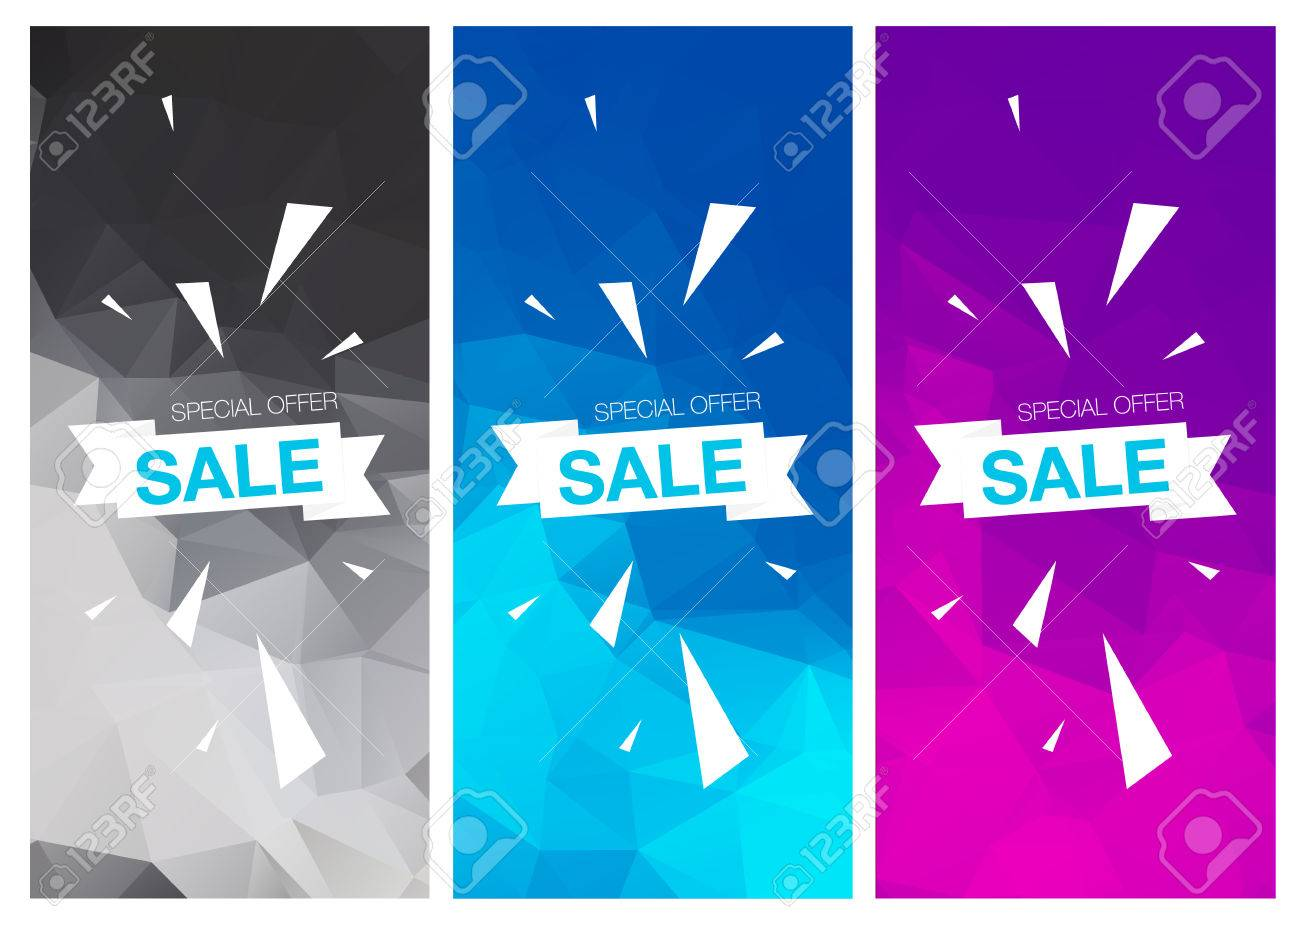 super special offer web banner templates on colored super special offer web banner templates on colored background stock vector 52951284